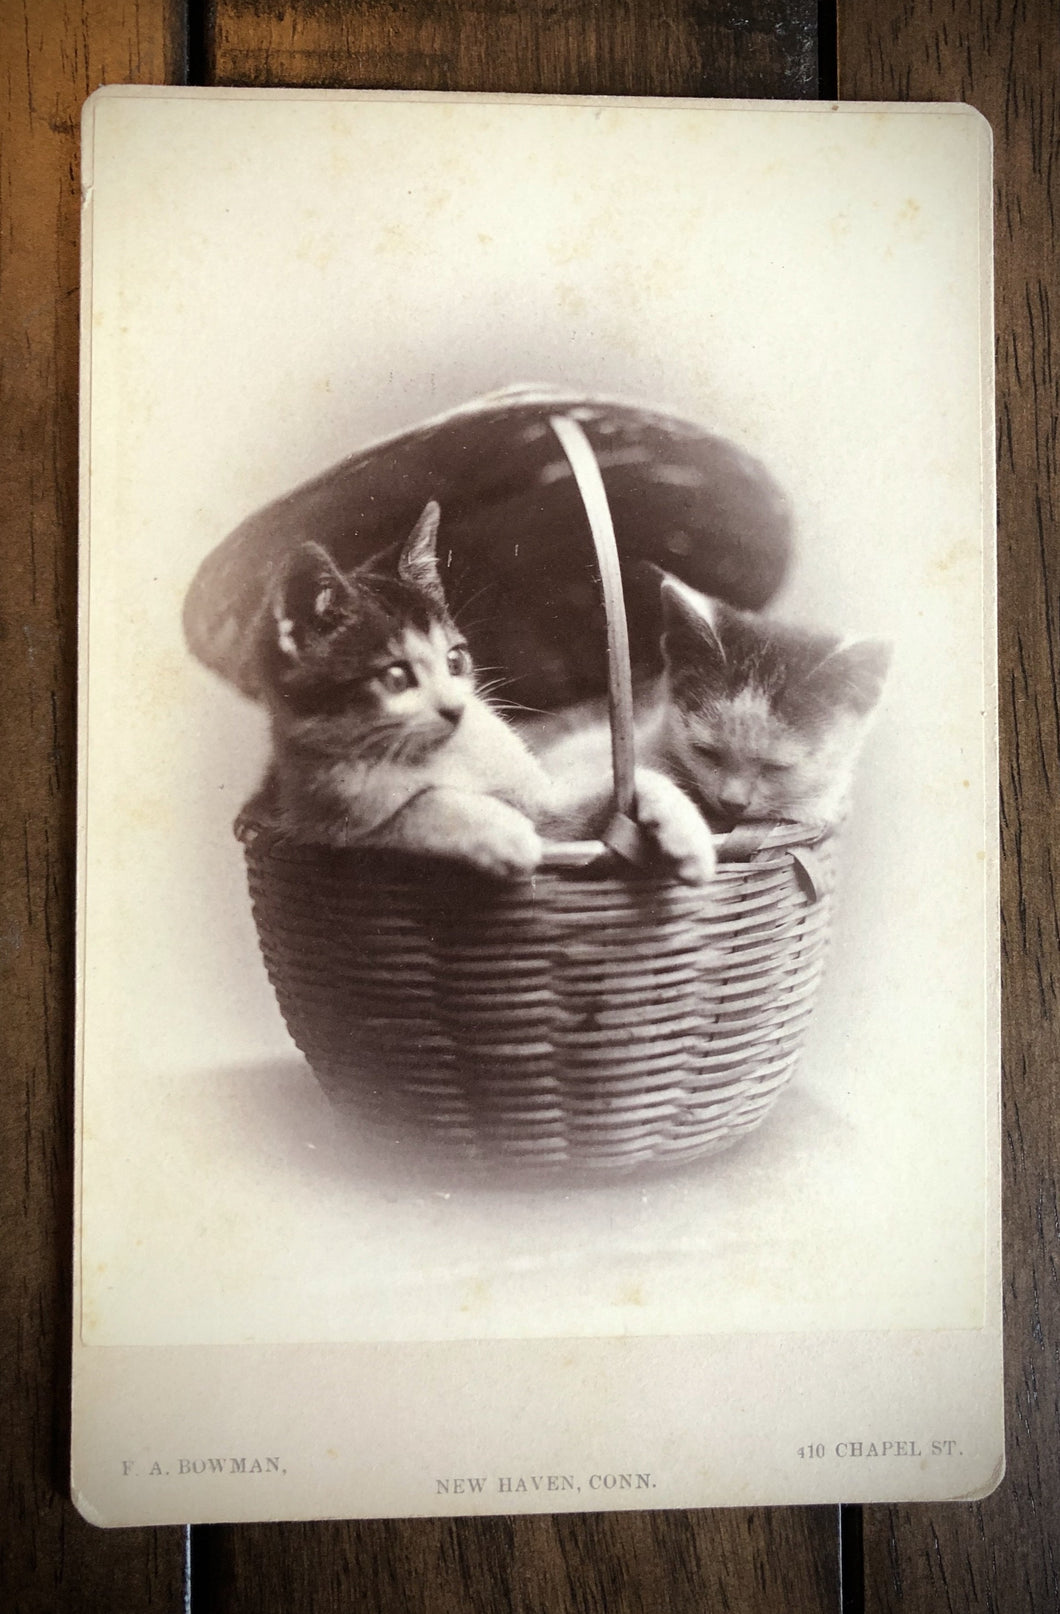 Two Kittens / Cats in a Basket 1870s 1880s Cabinet Card Photo